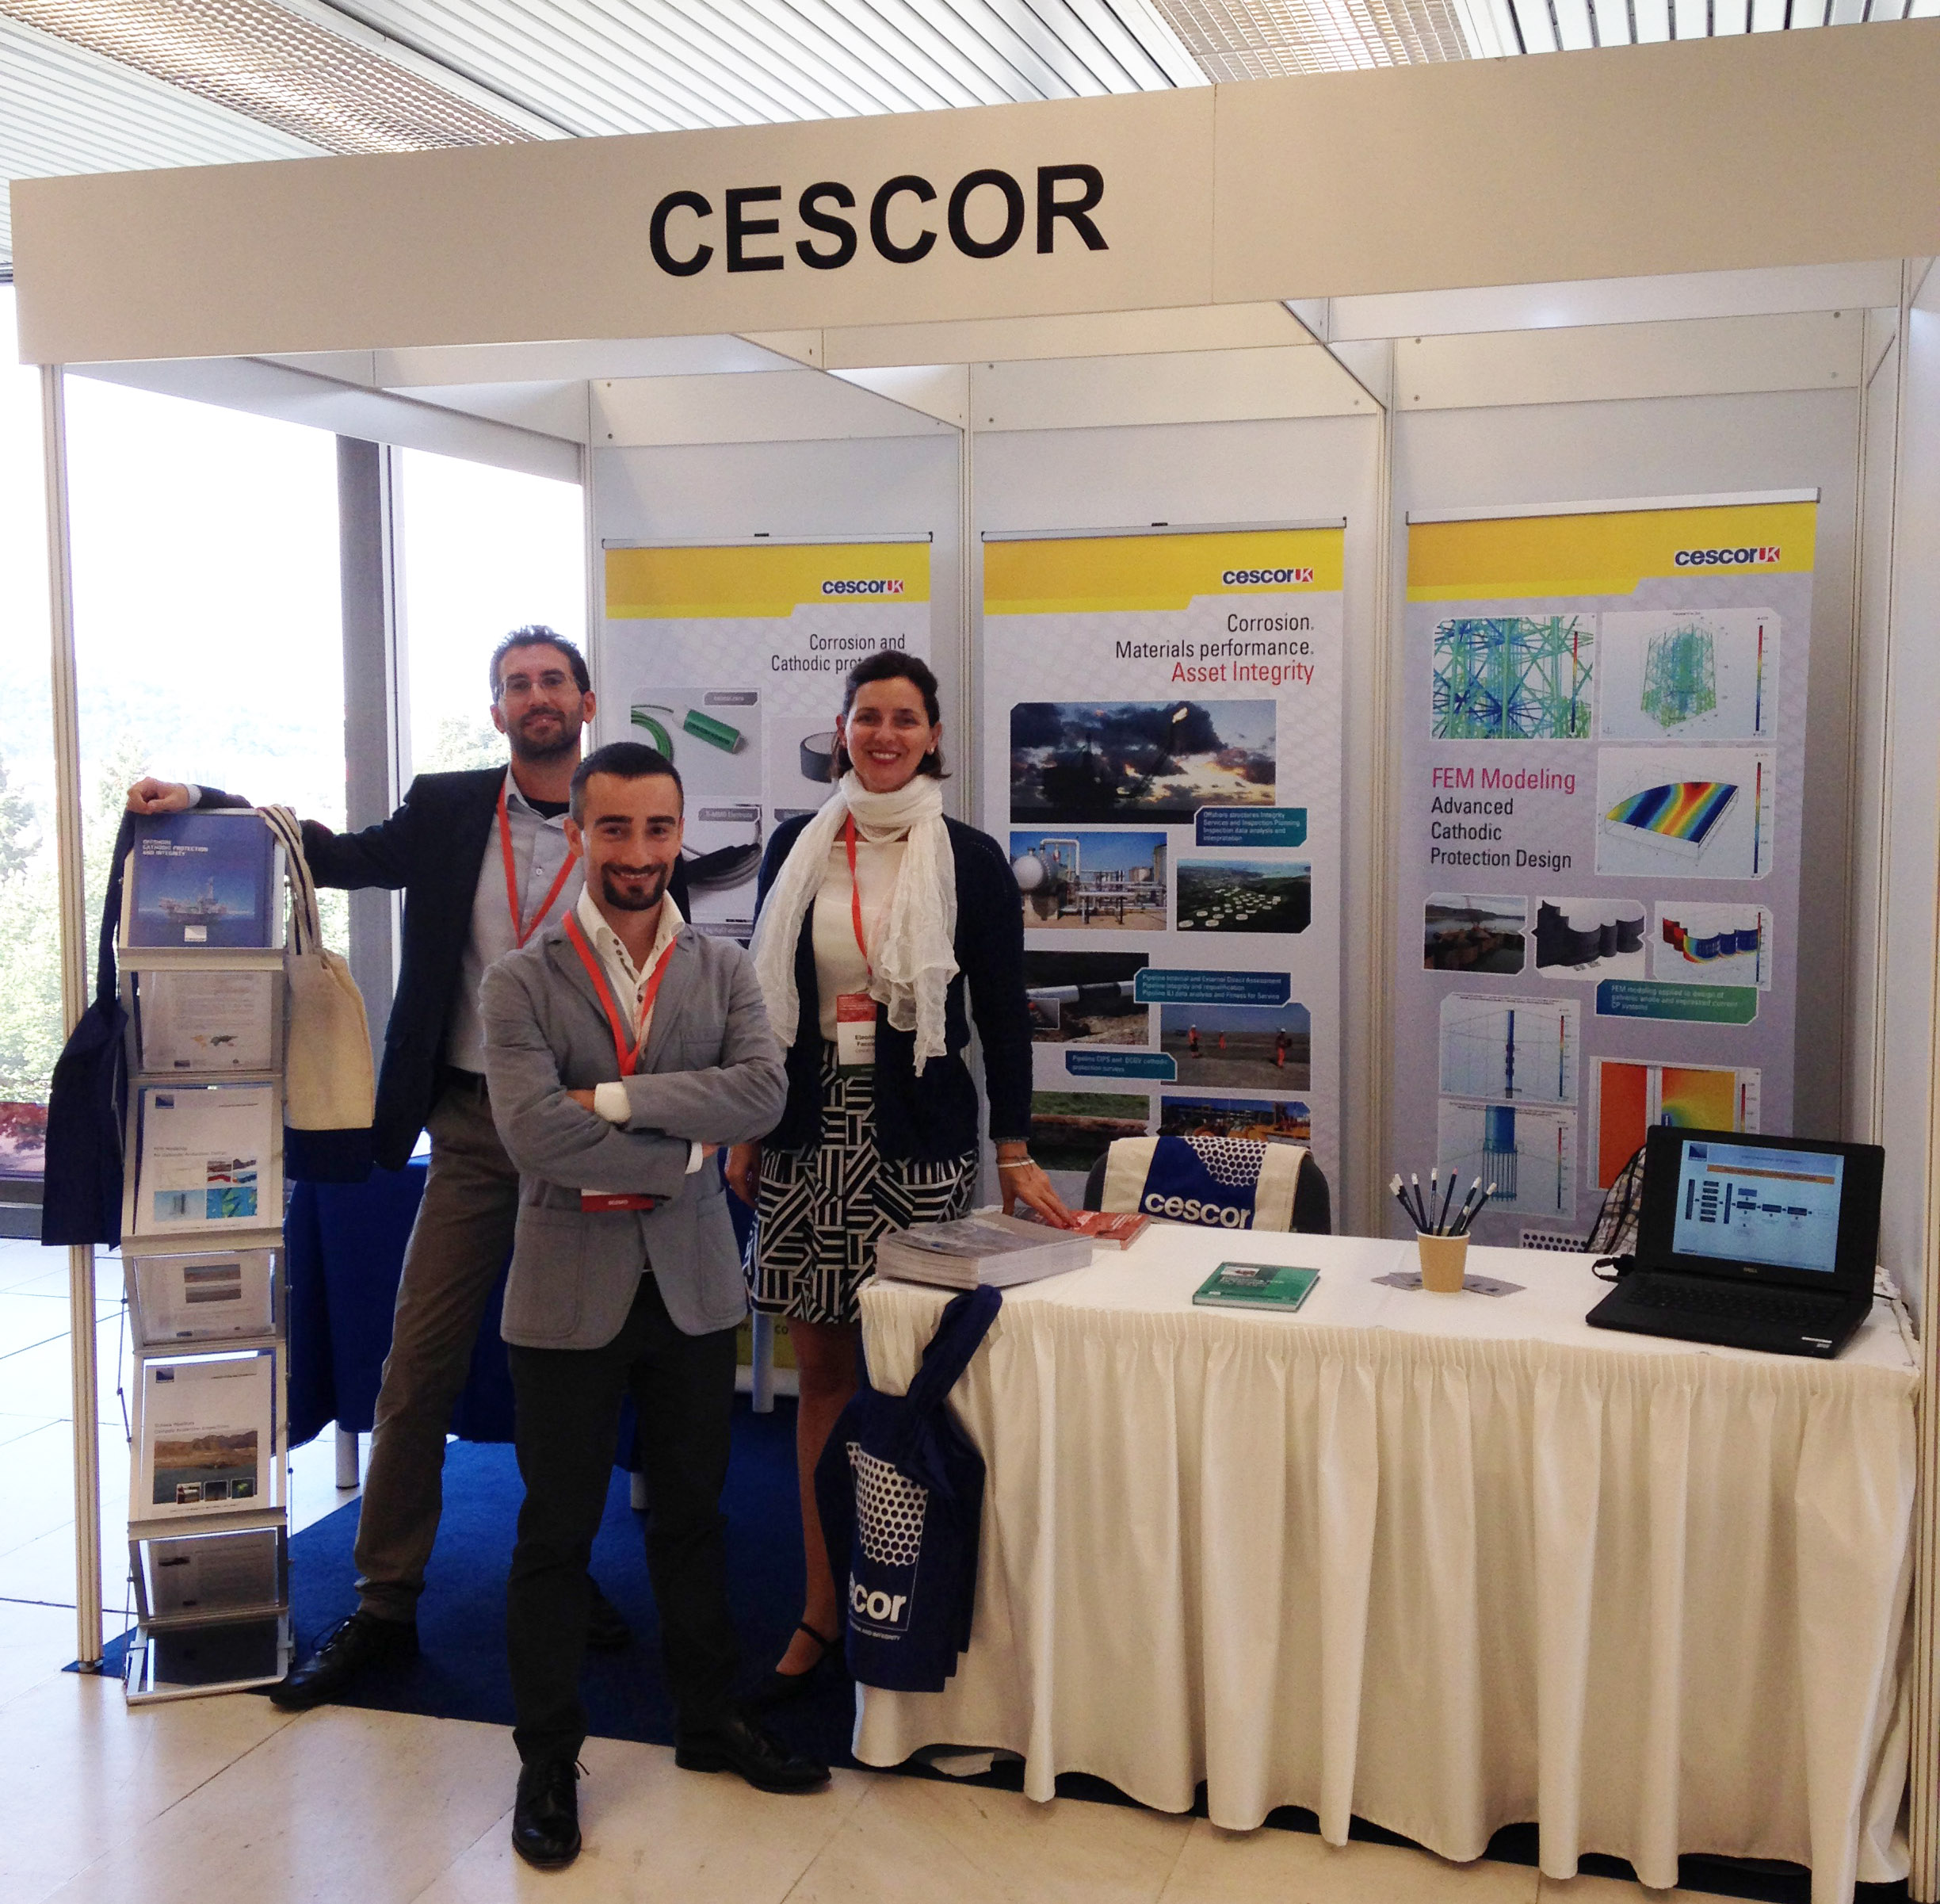 Cescor's exhibition stand at Eurocorr 2017